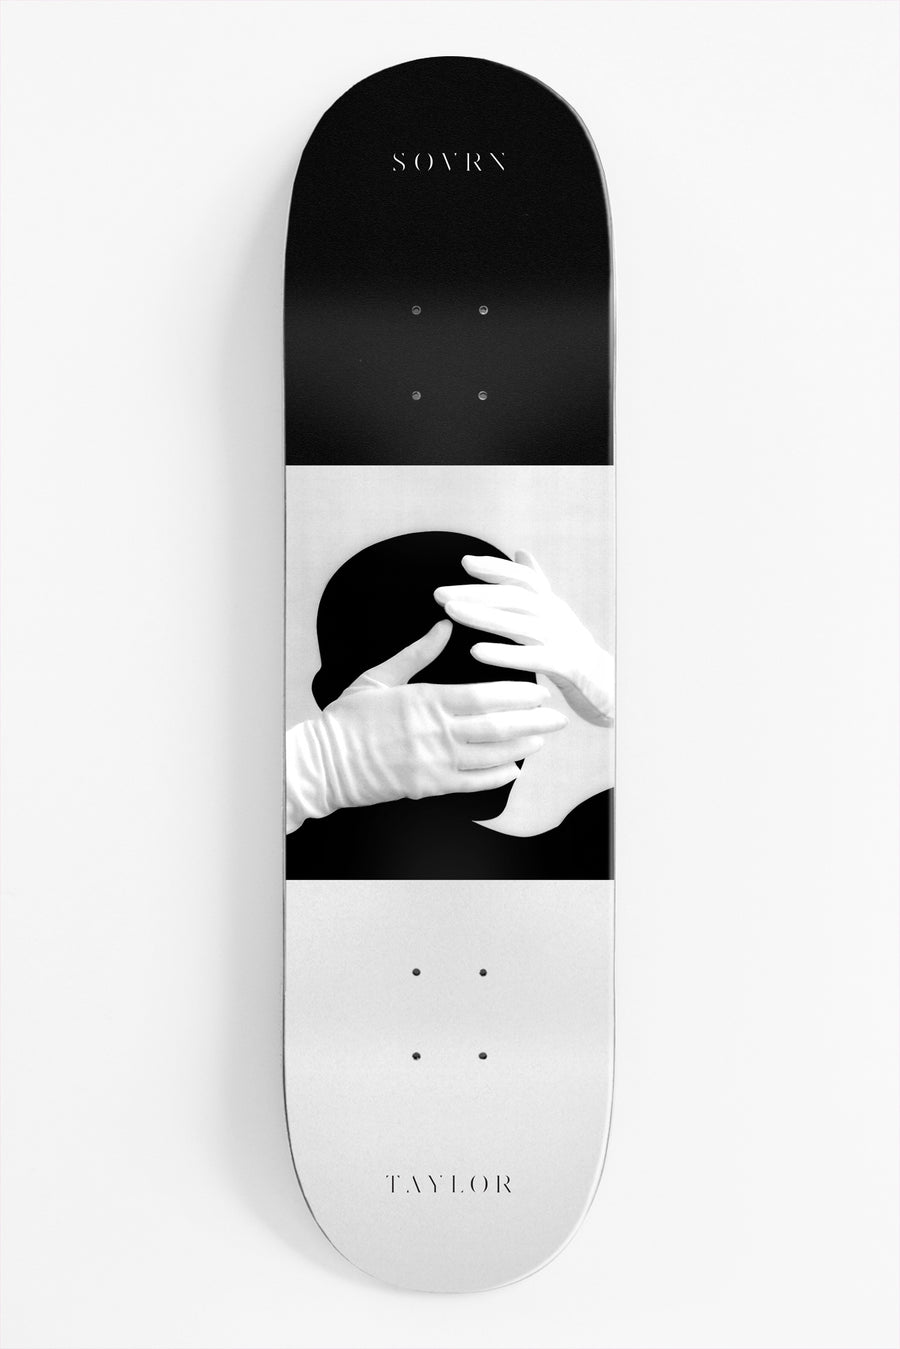 ECHO CHAMBER - Mikey Taylor | Deck - SOVRN